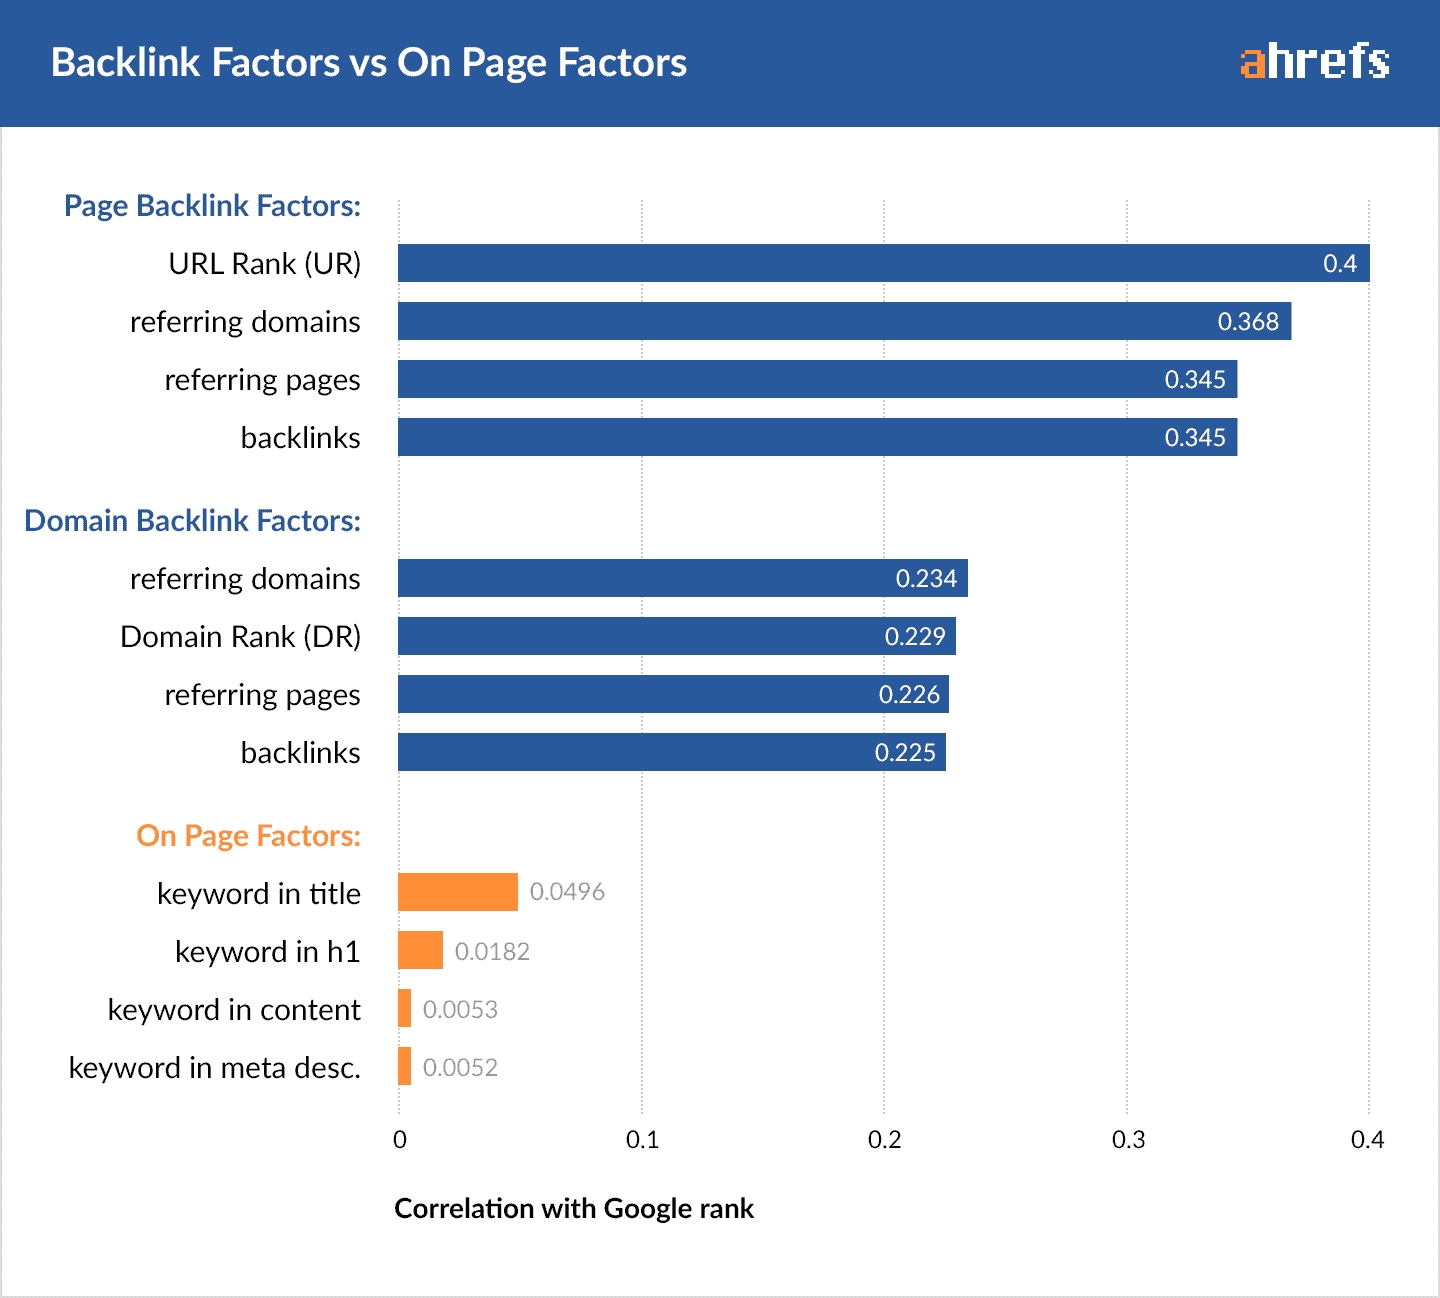 Backlink factors